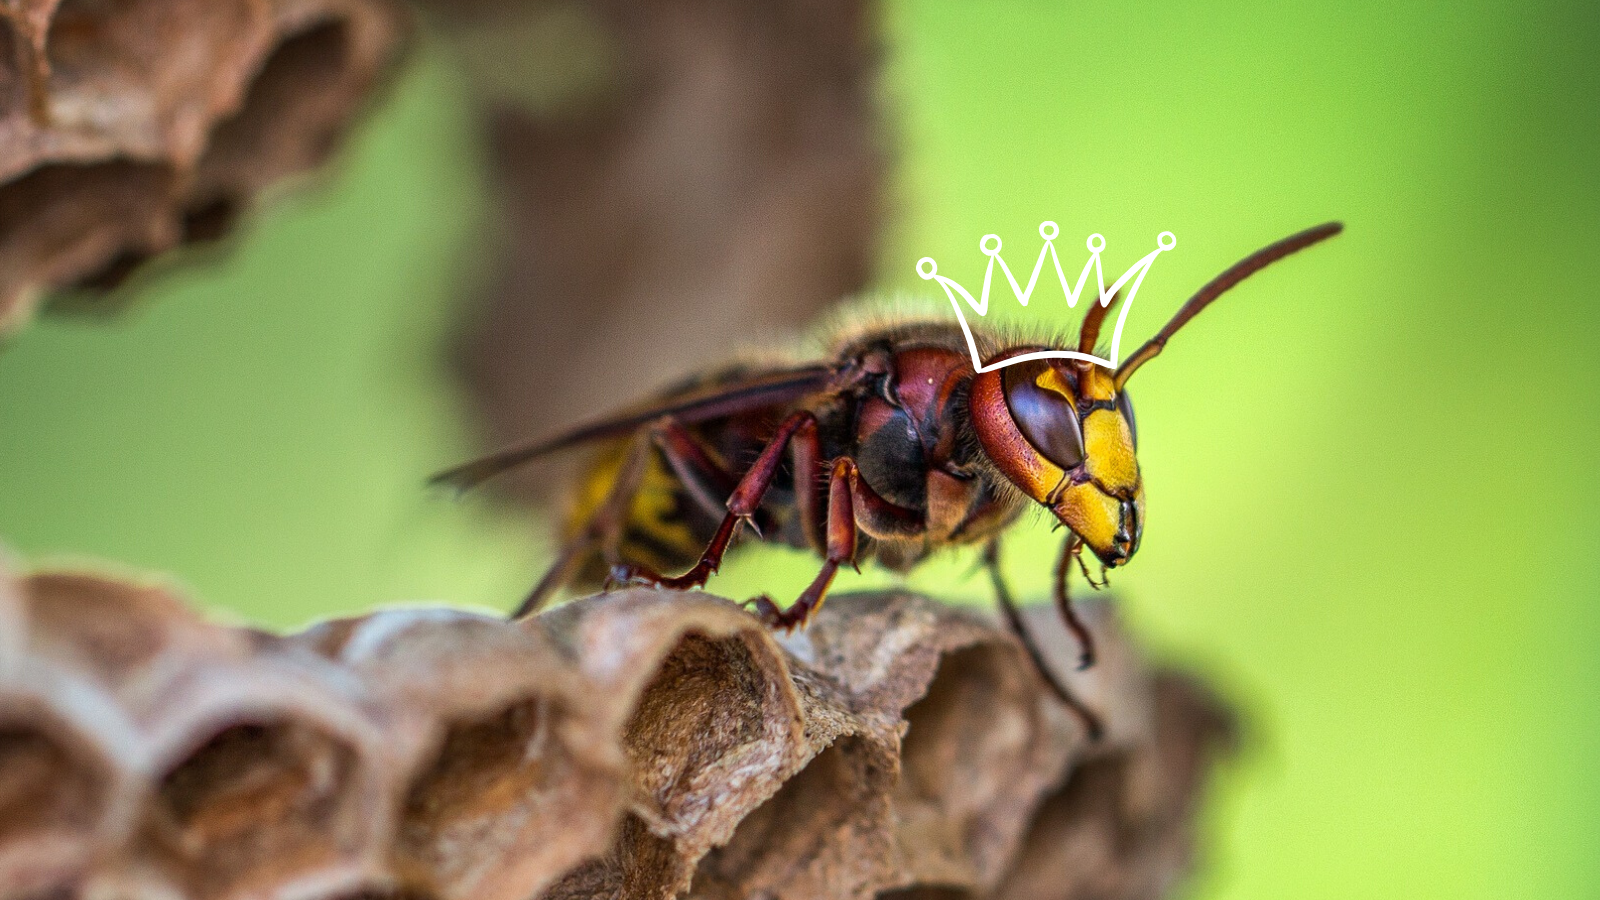 Image: hornet wearing a crown